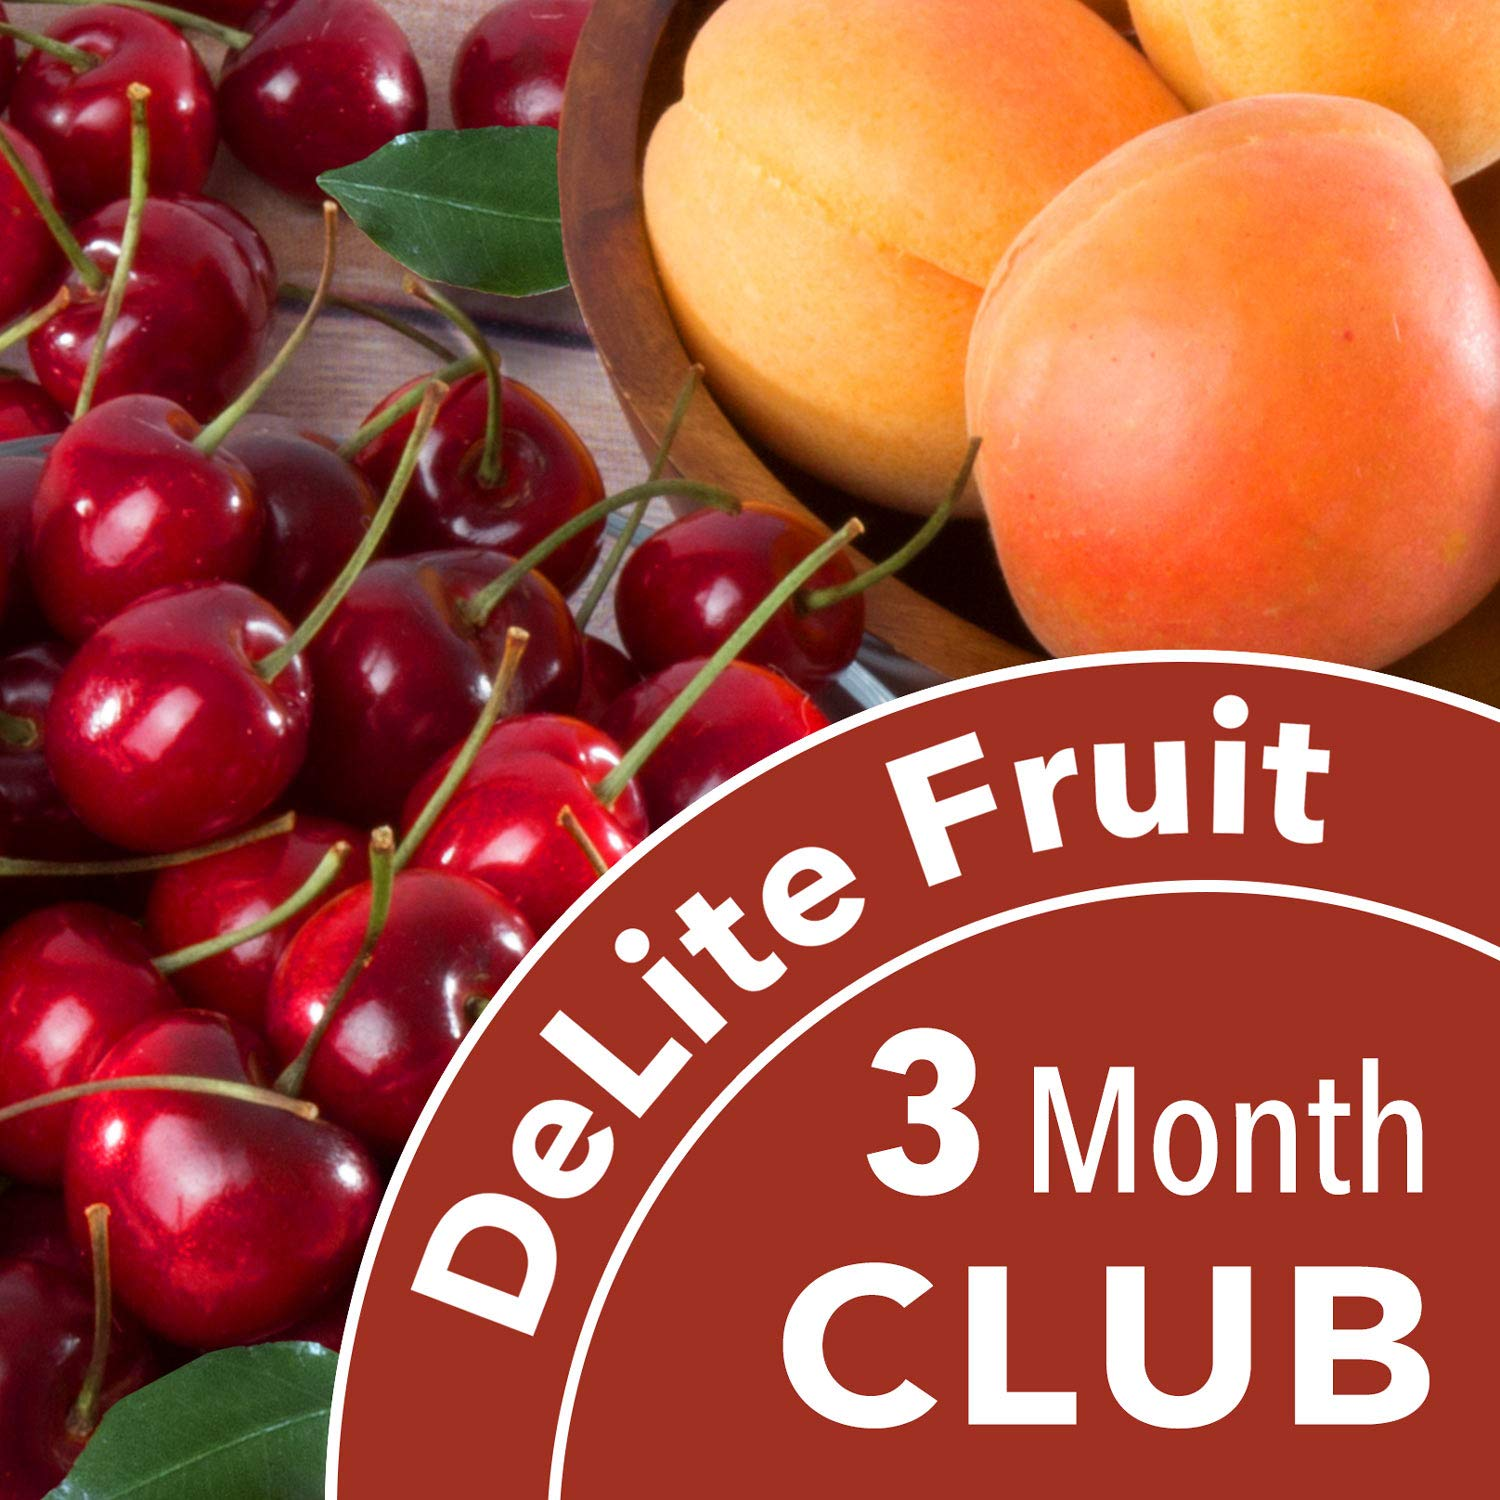 Golden State DeLite Monthly Fruit Club - 3 Month Club by Golden State Fruit (Image #1)